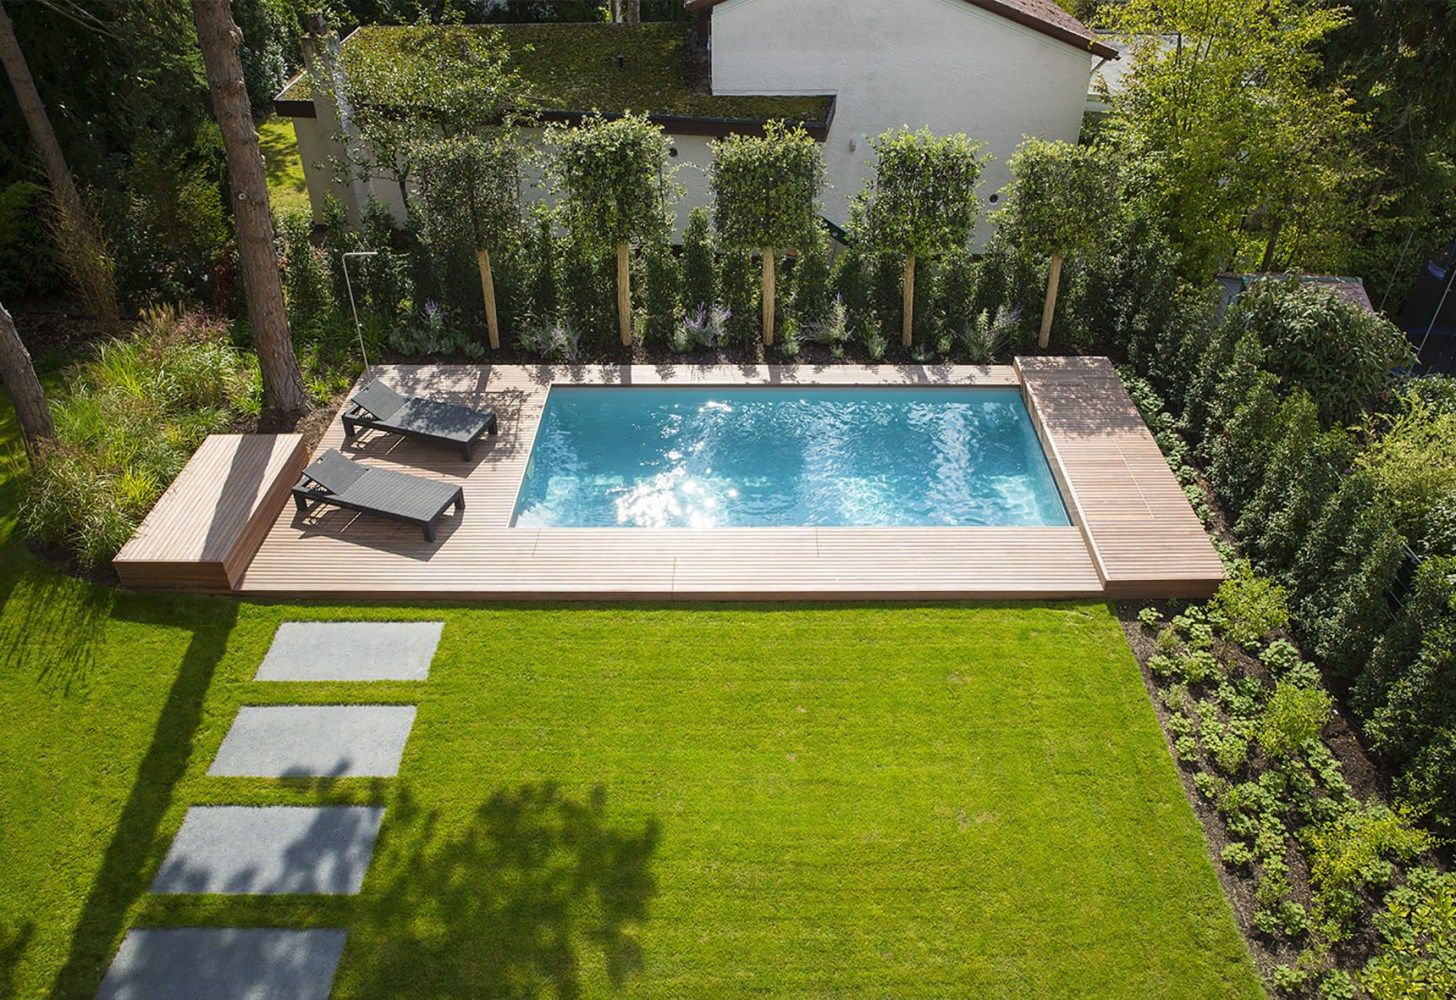 Pool in kleinem garten garten pinterest garten pool for Garten pool 457x122